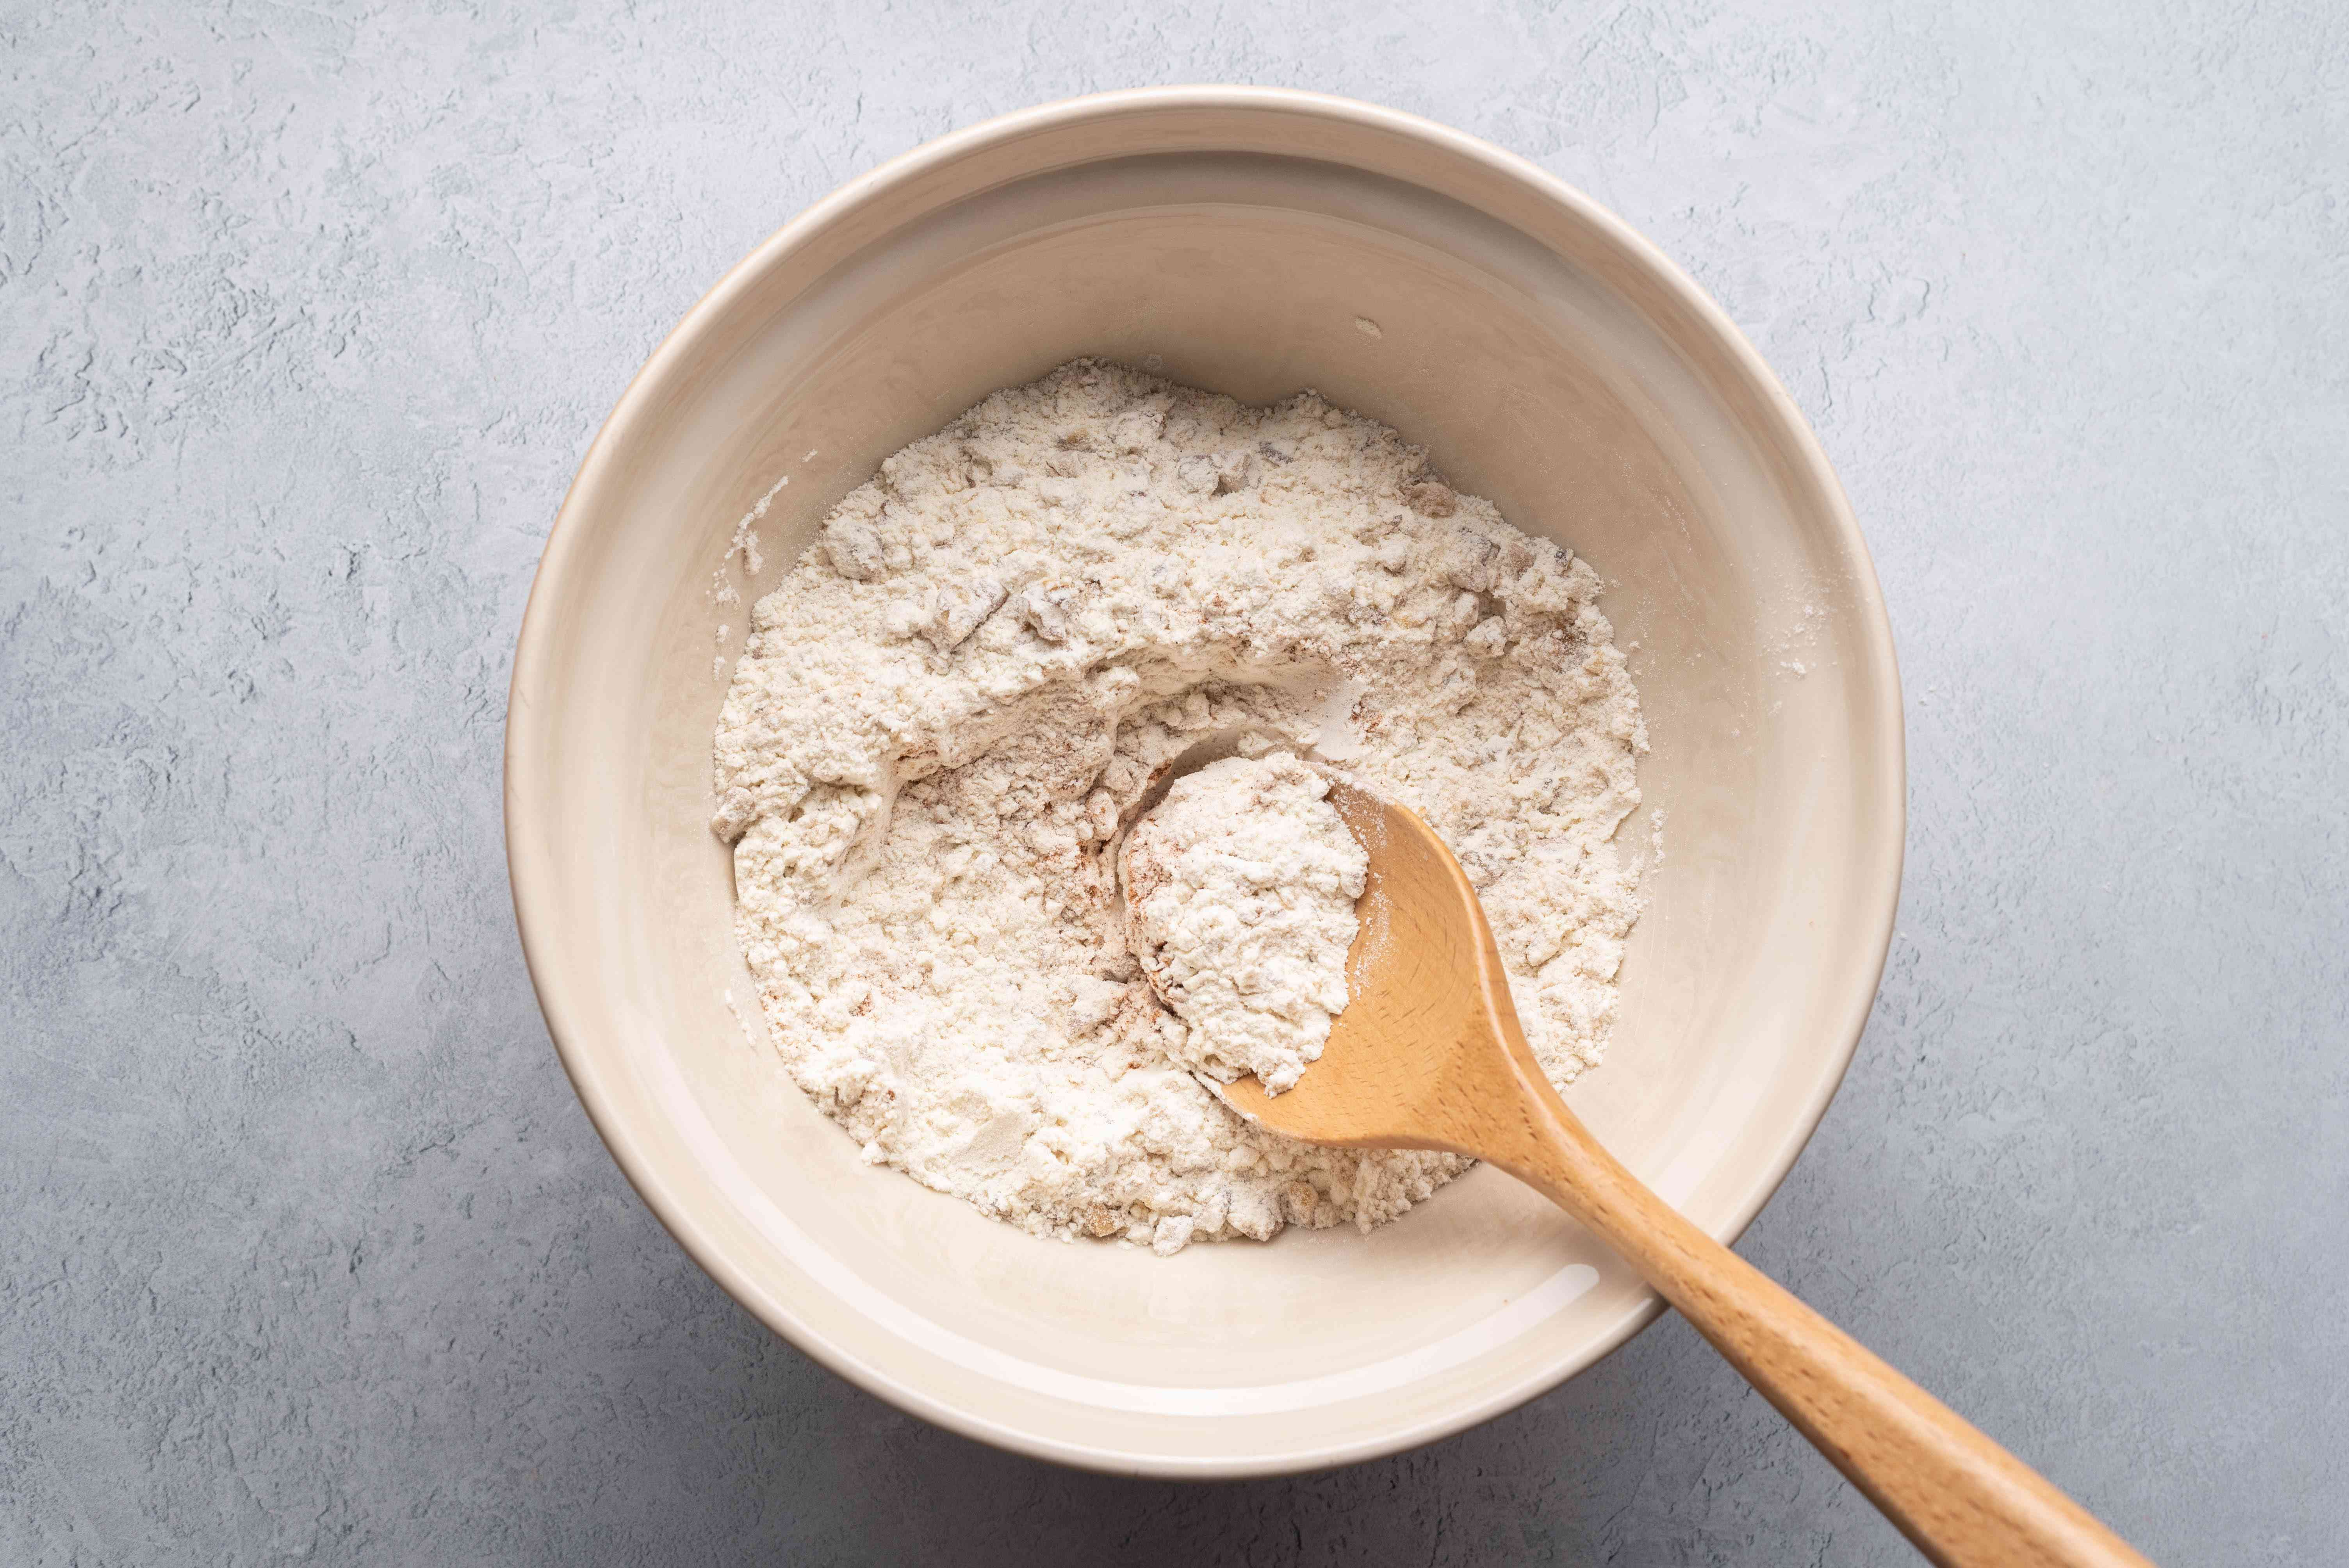 combine the flour, nuts, baking powder, baking soda, salt, and cinnamon in a bowl